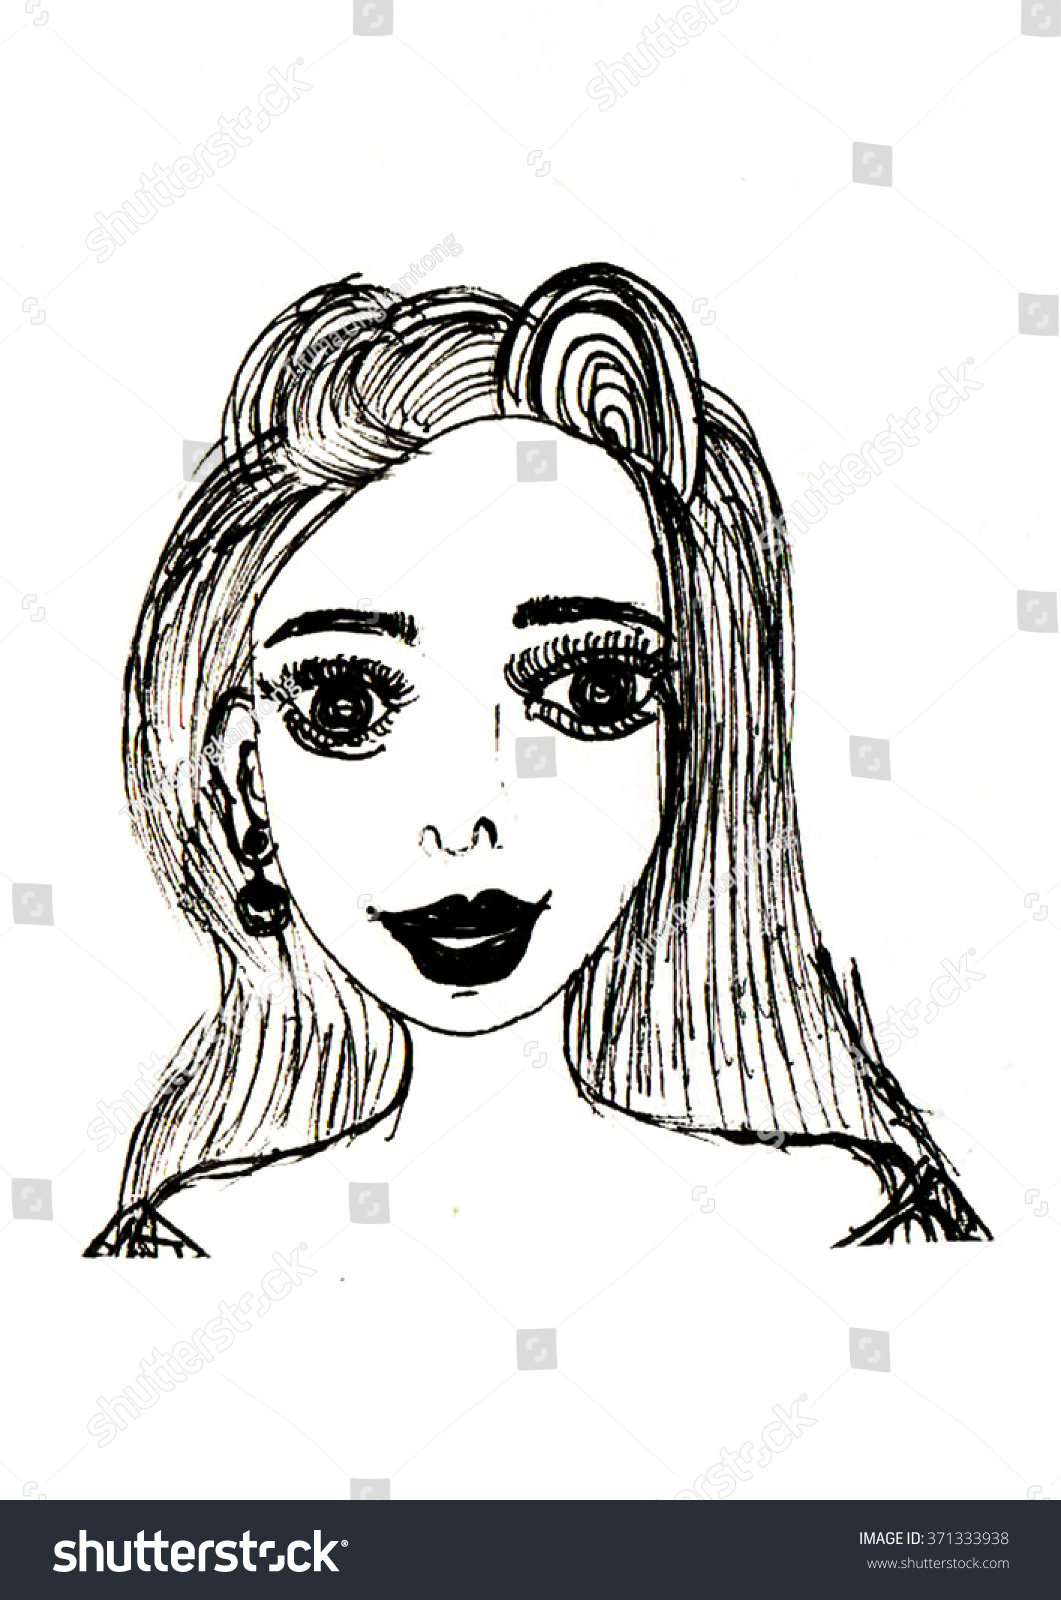 Sketch Young Woman Hand Draw Illustration Stock Illustration